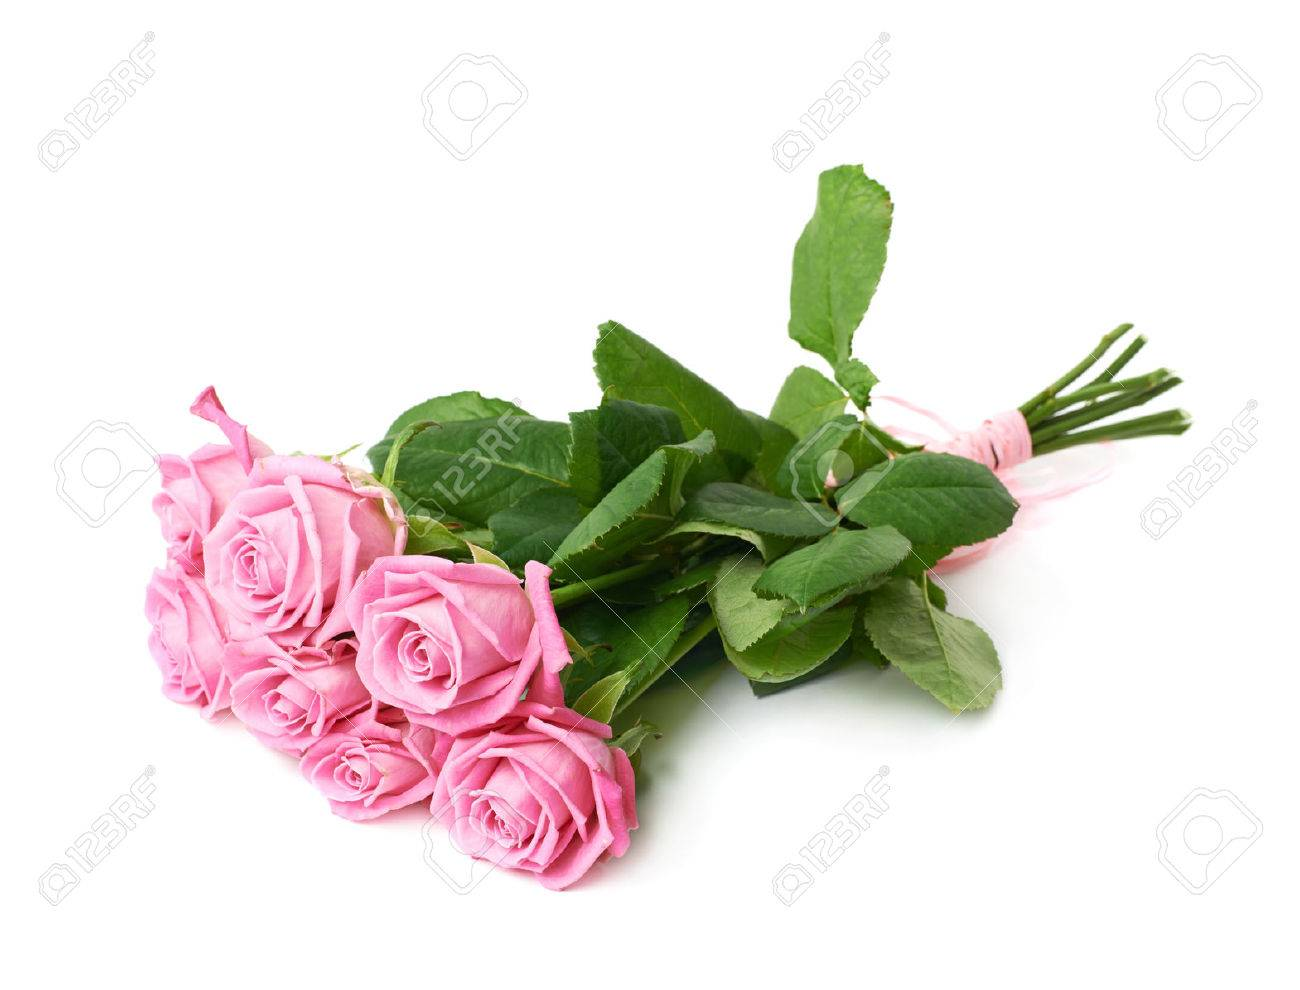 Flowers bouquet stock photos royalty free flowers bouquet images bouquet of pink roses isolated over the white background izmirmasajfo